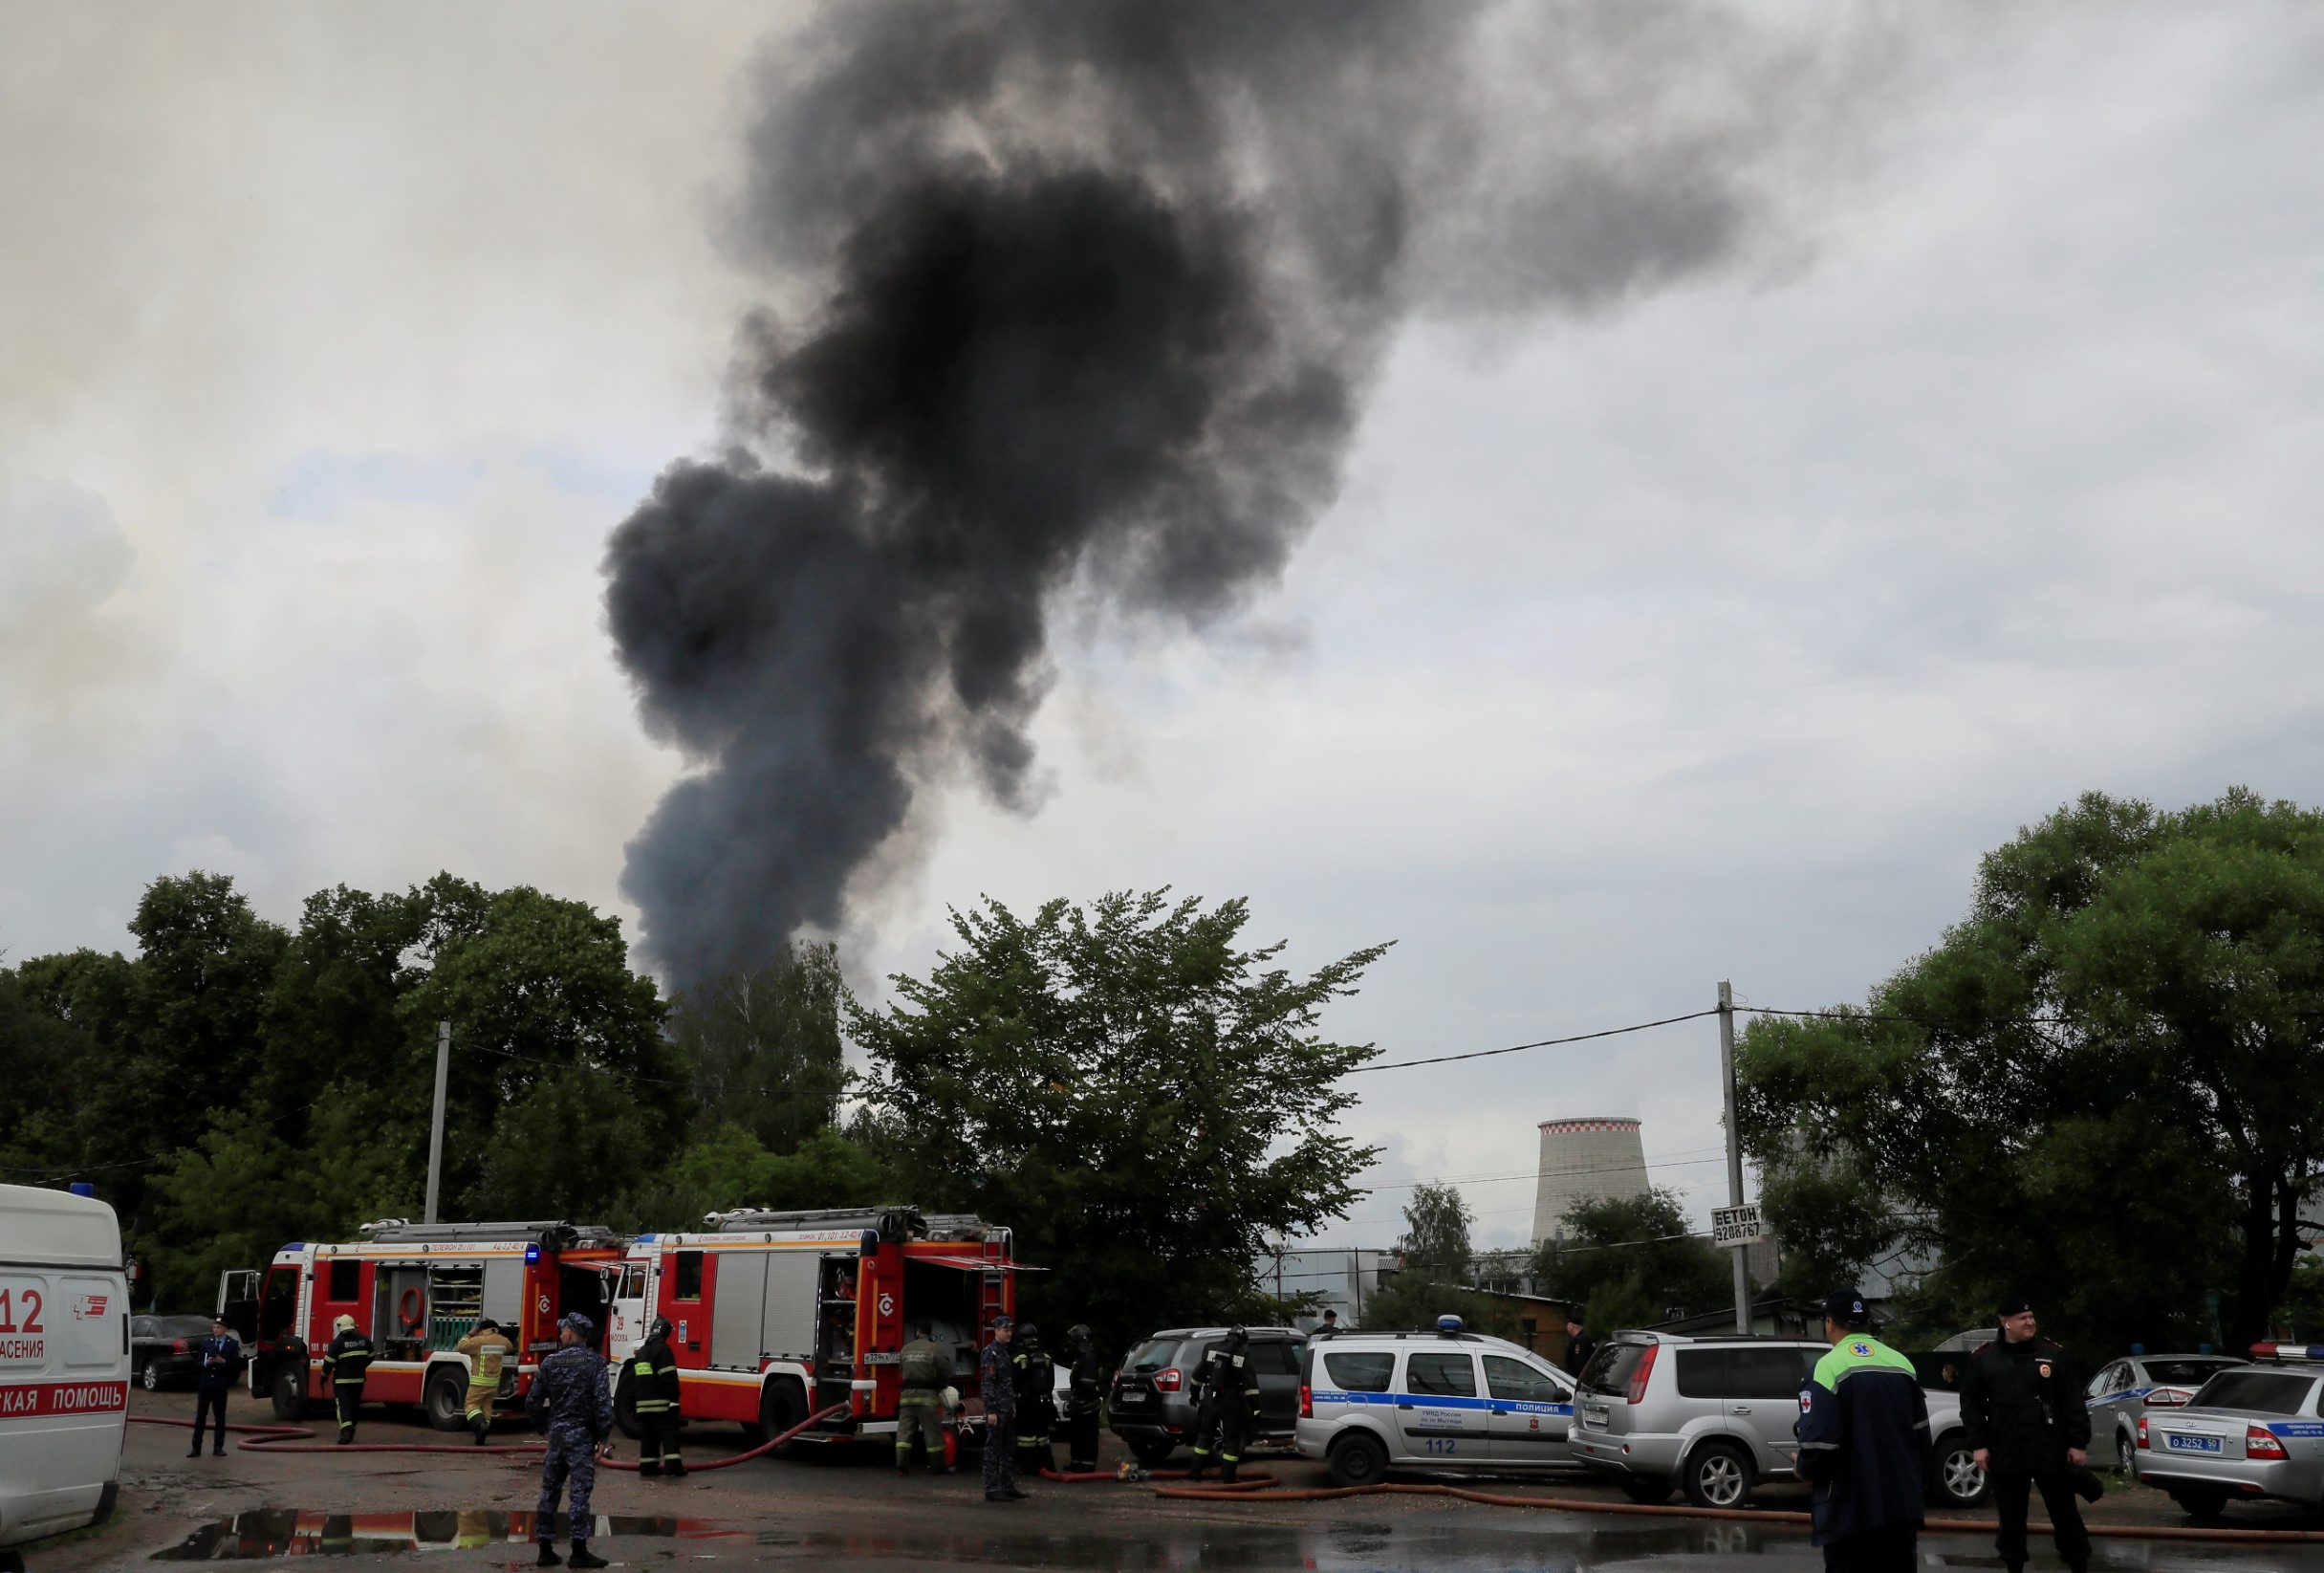 Emergency services work near the site of a fire at an electricity generating power station in Moscow region, Russia July 11, 2019. REUTERS/Tatyana Makeyeva